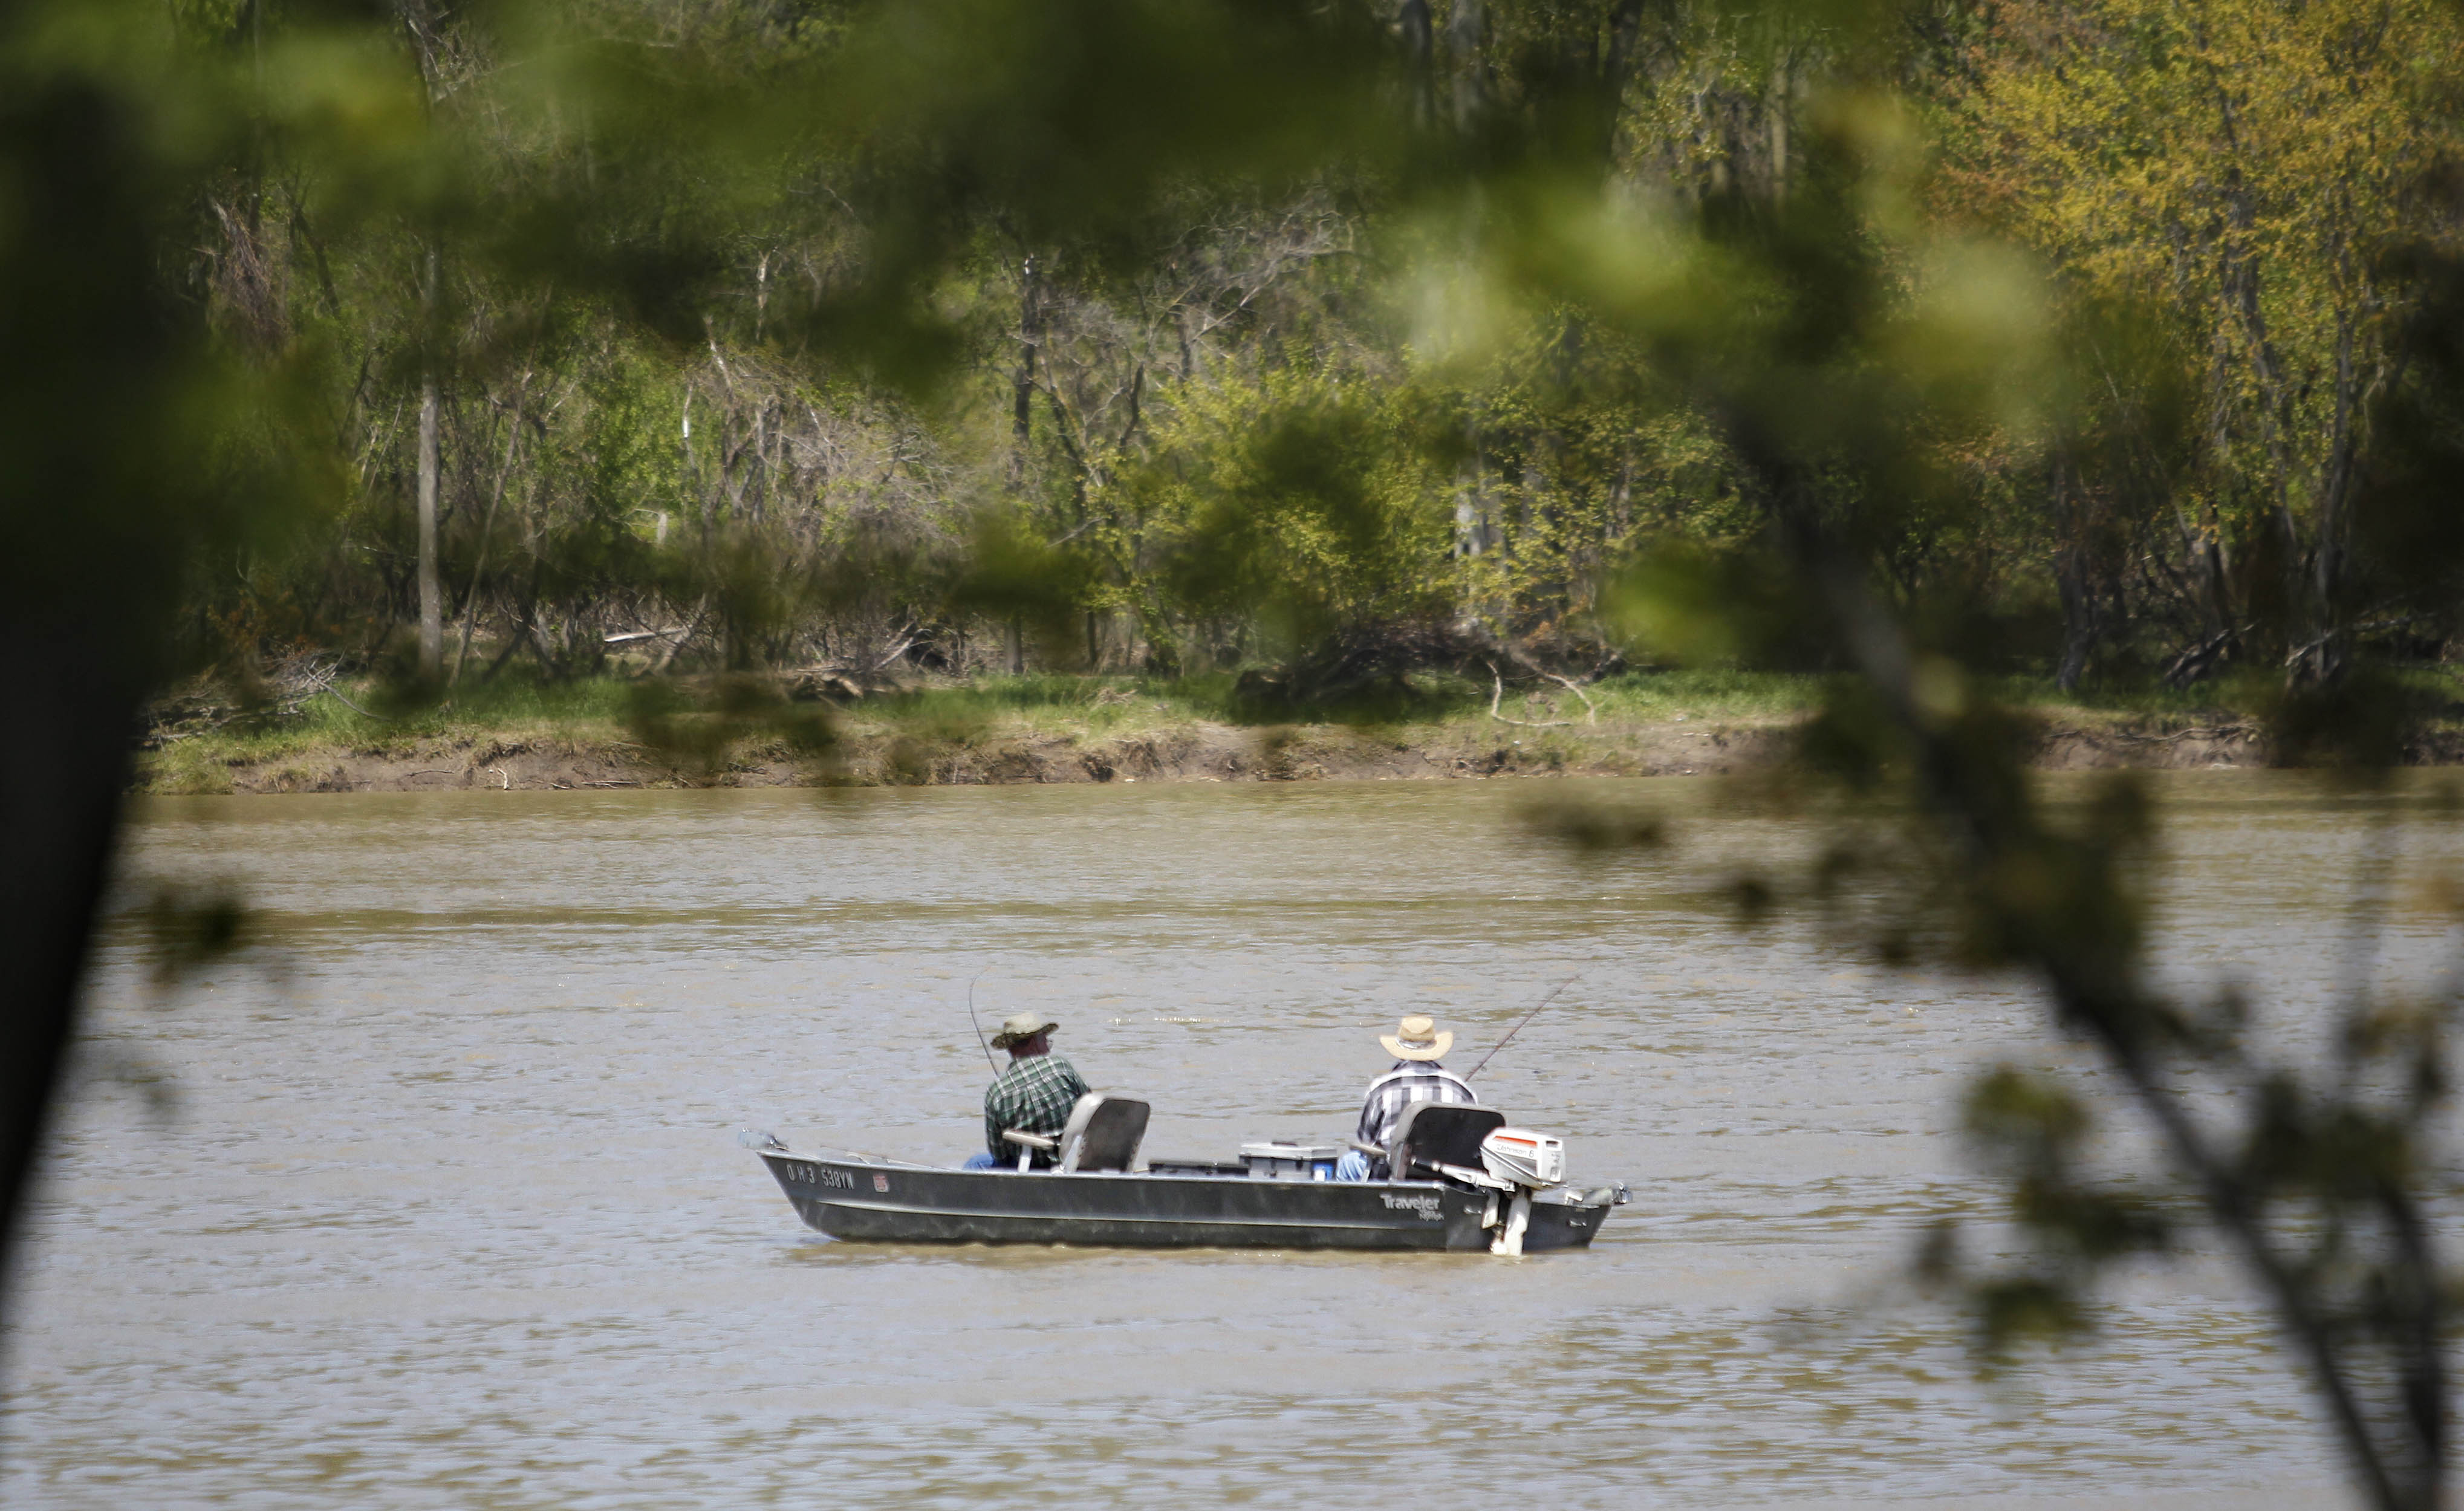 Blade fishing report catfish abound in maumee river the for Maumee river fishing report